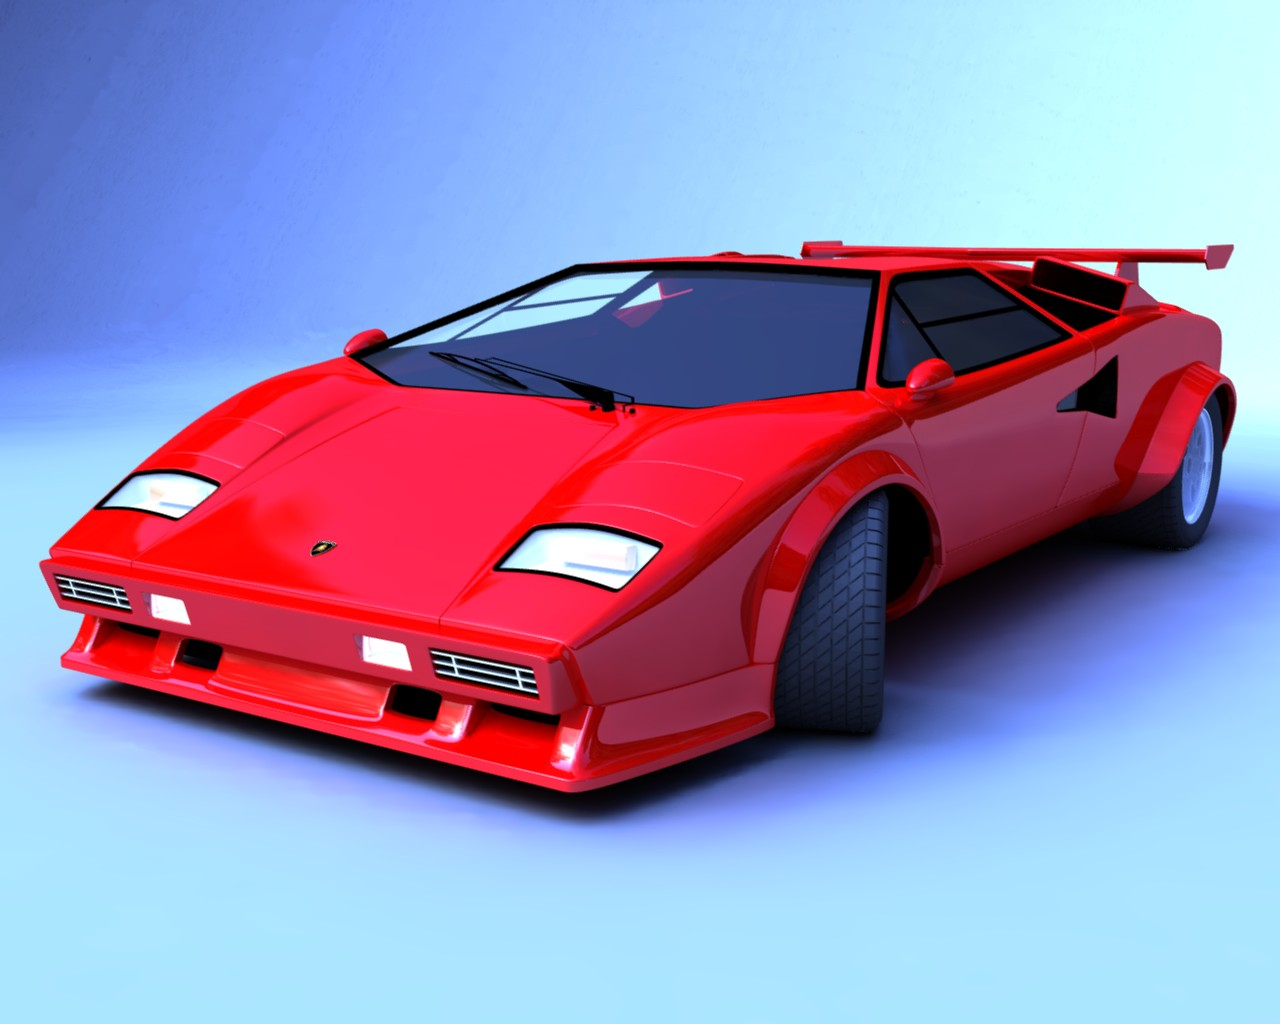 lamborghini countach zero to 60 lamborghini 0 60 times. Black Bedroom Furniture Sets. Home Design Ideas